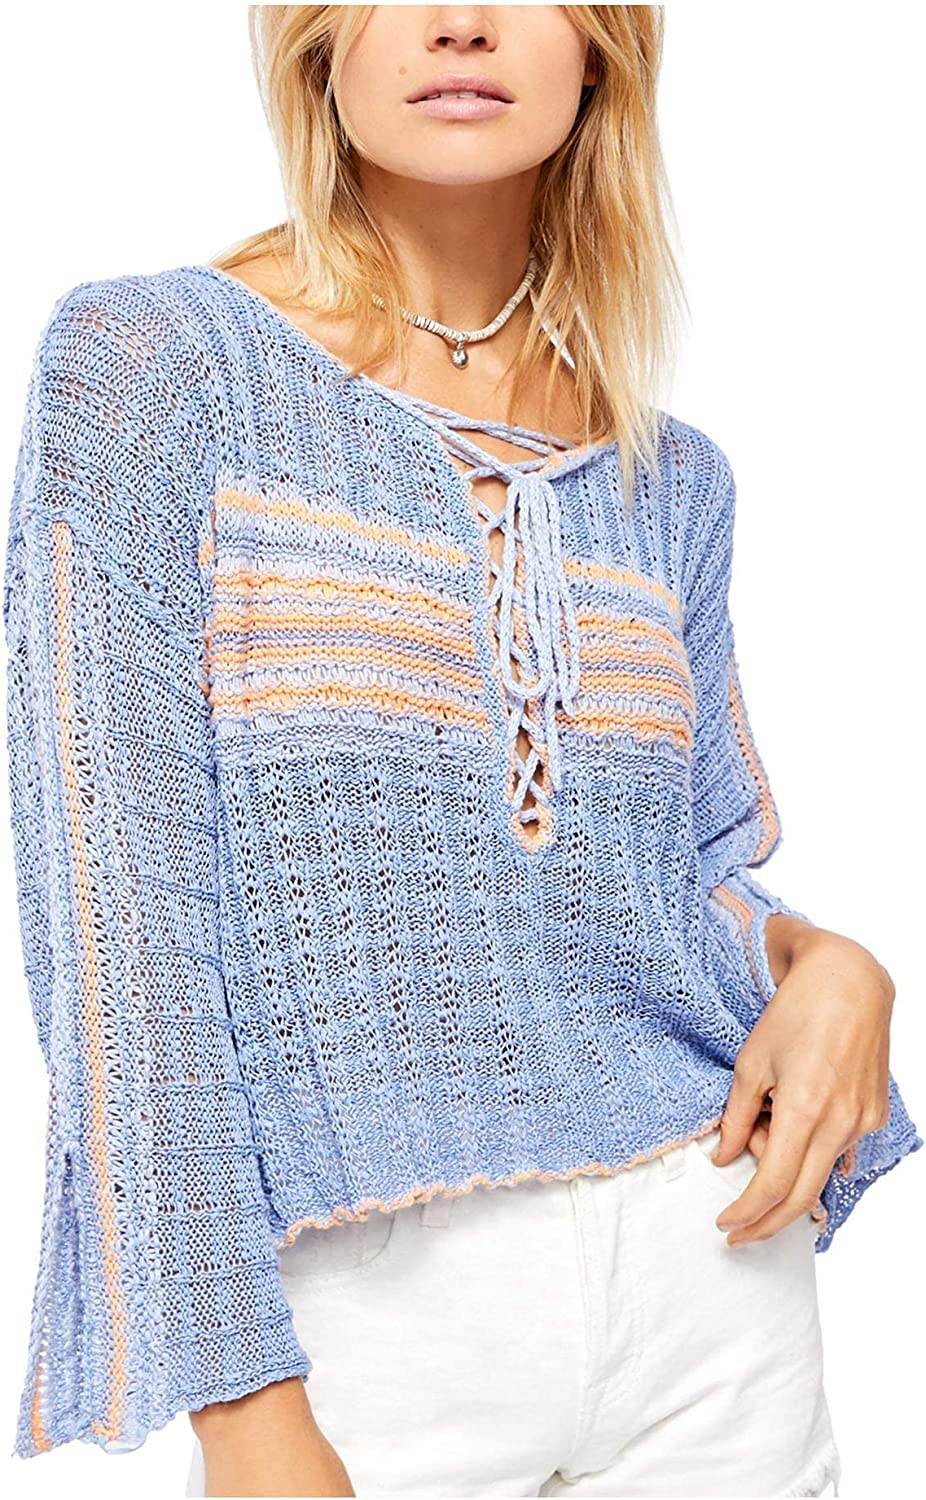 Free People Marina Bay Women's Open Stitch Striped Lace-Up Pullover Sweater